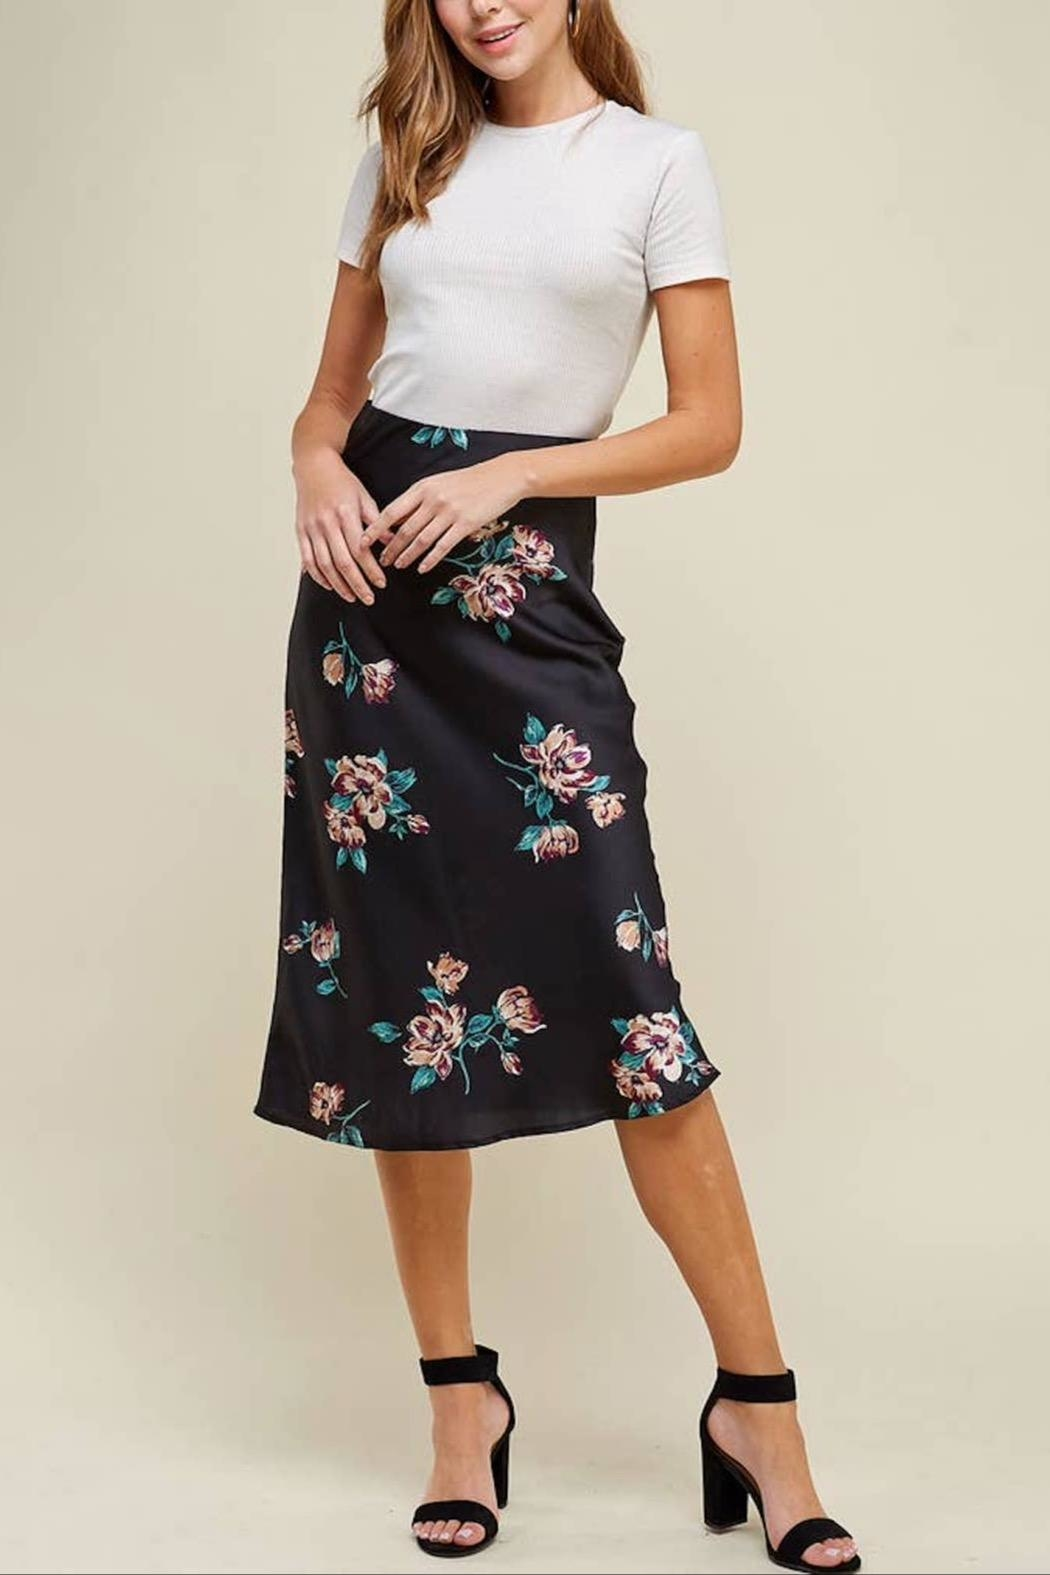 WINSLOW Floral Midi Skirt - Main Image